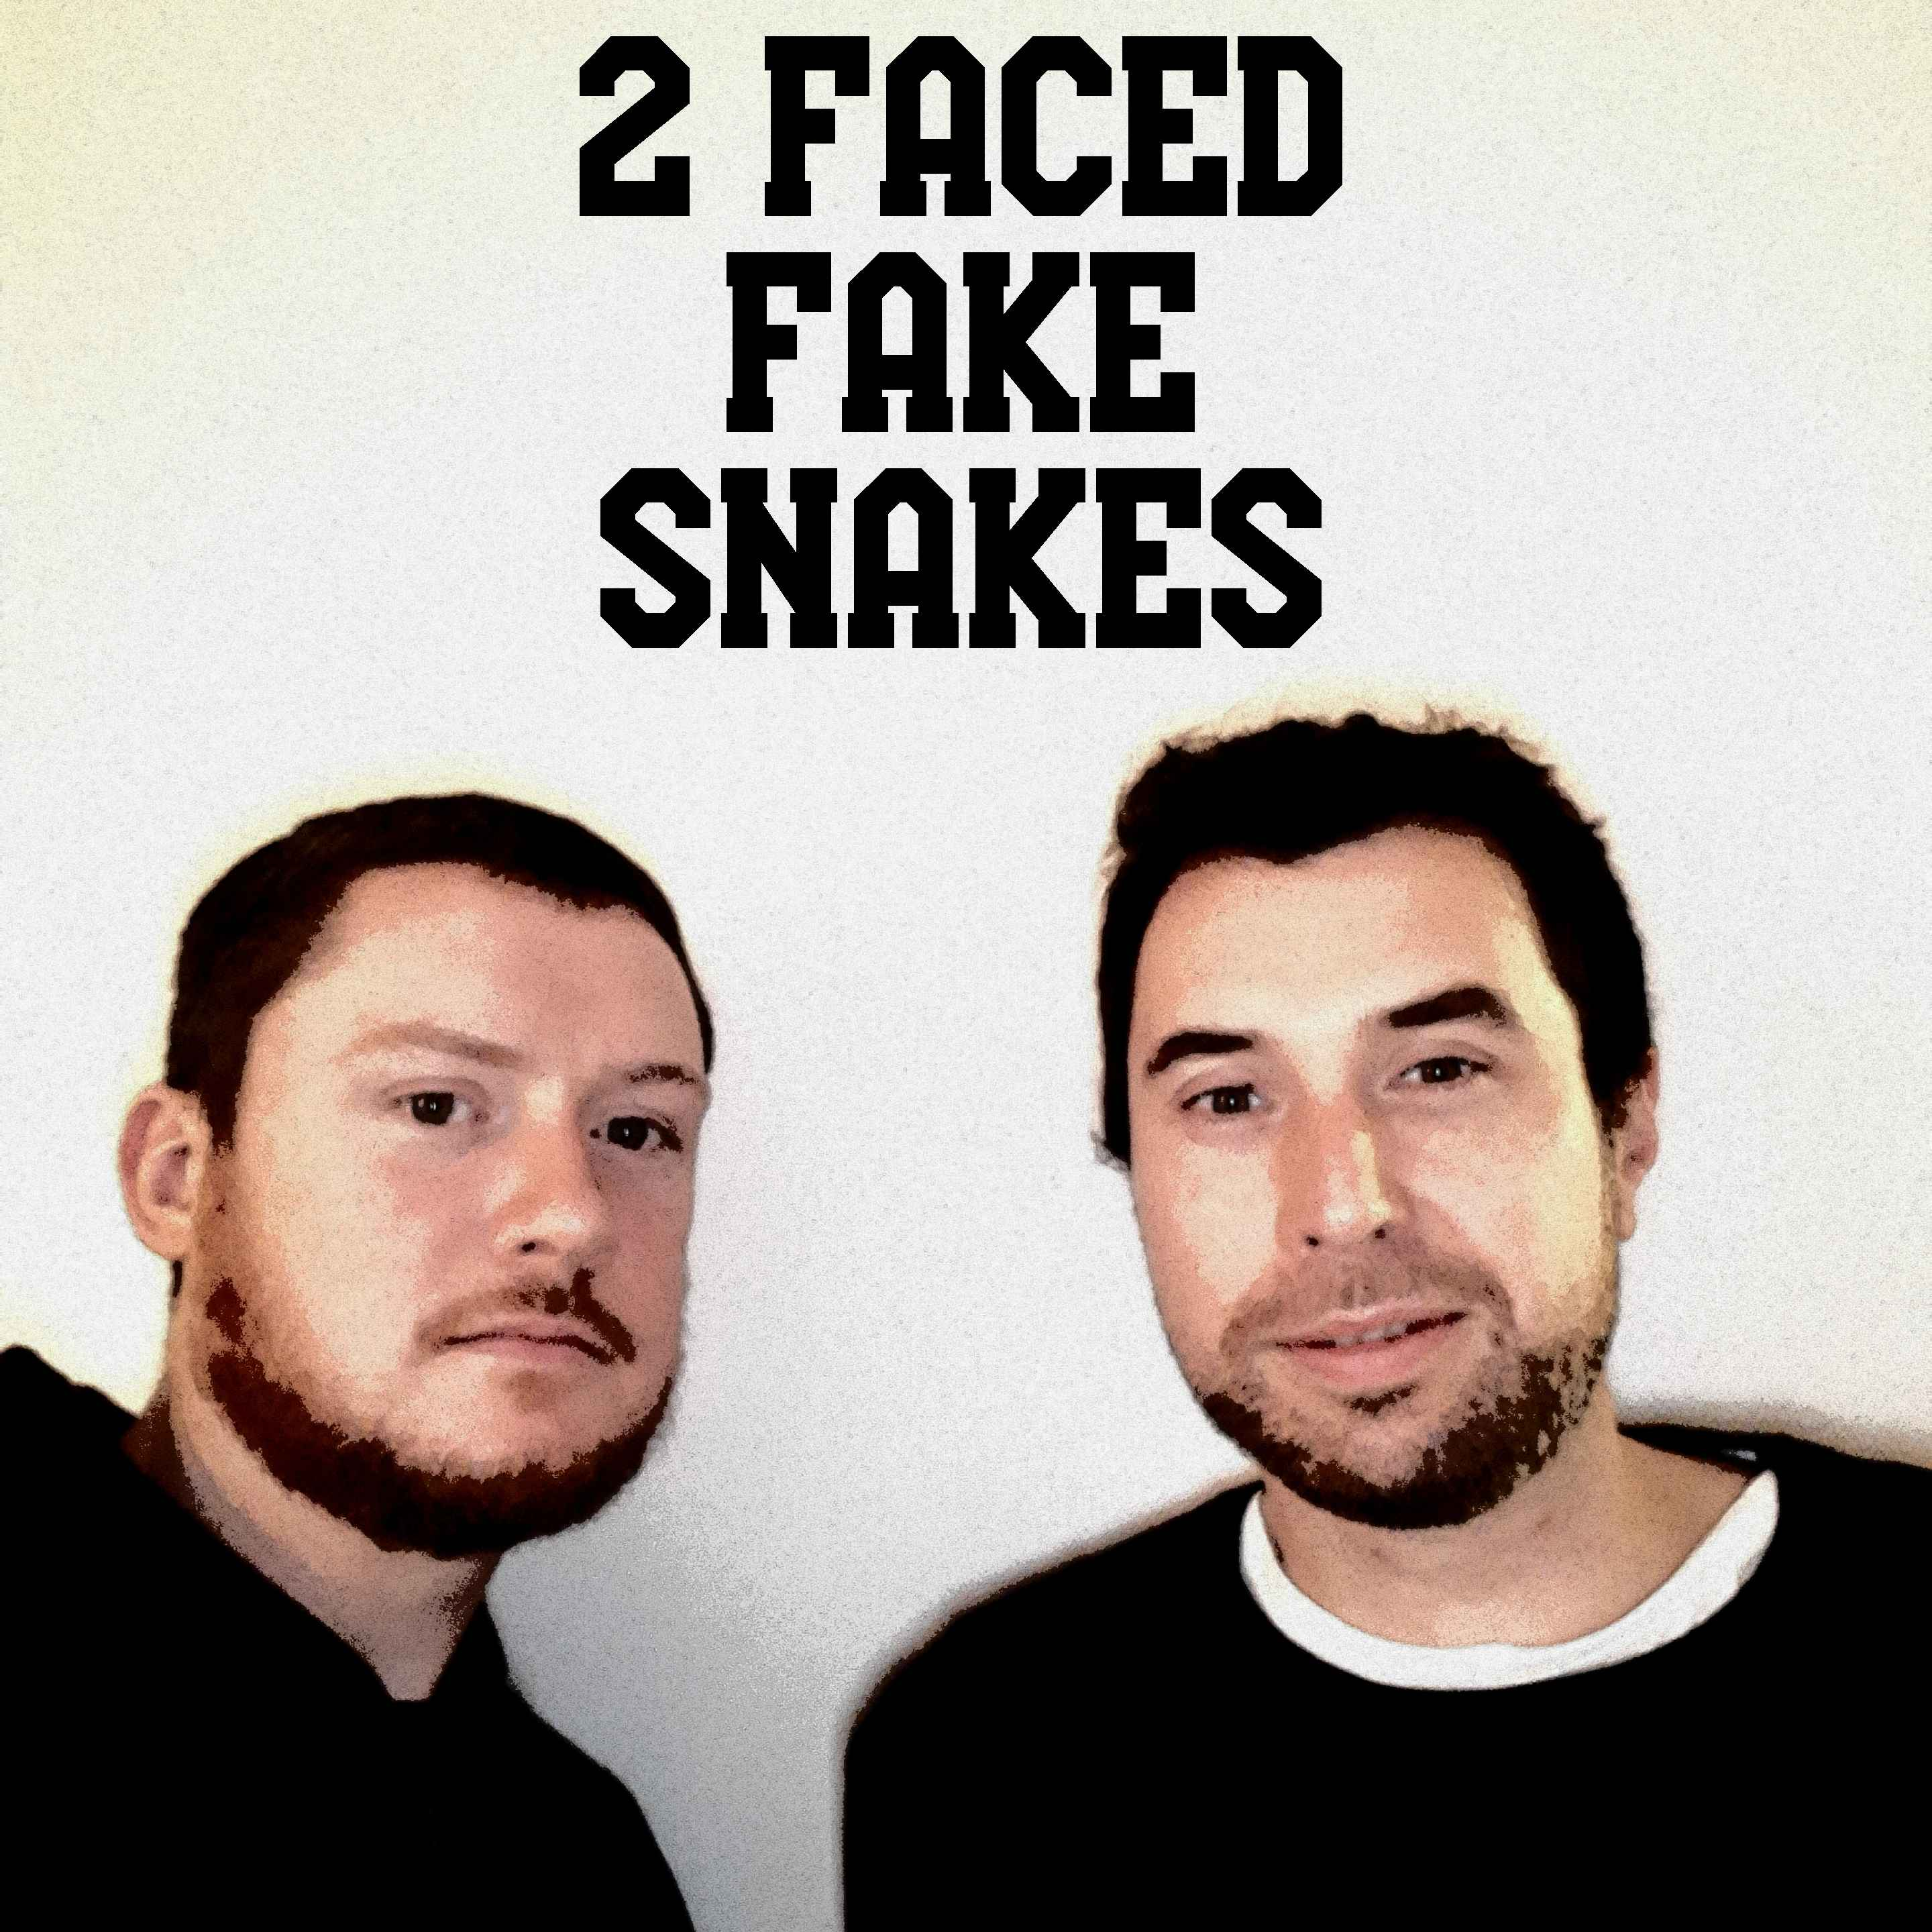 2 Faced Fake Snakes